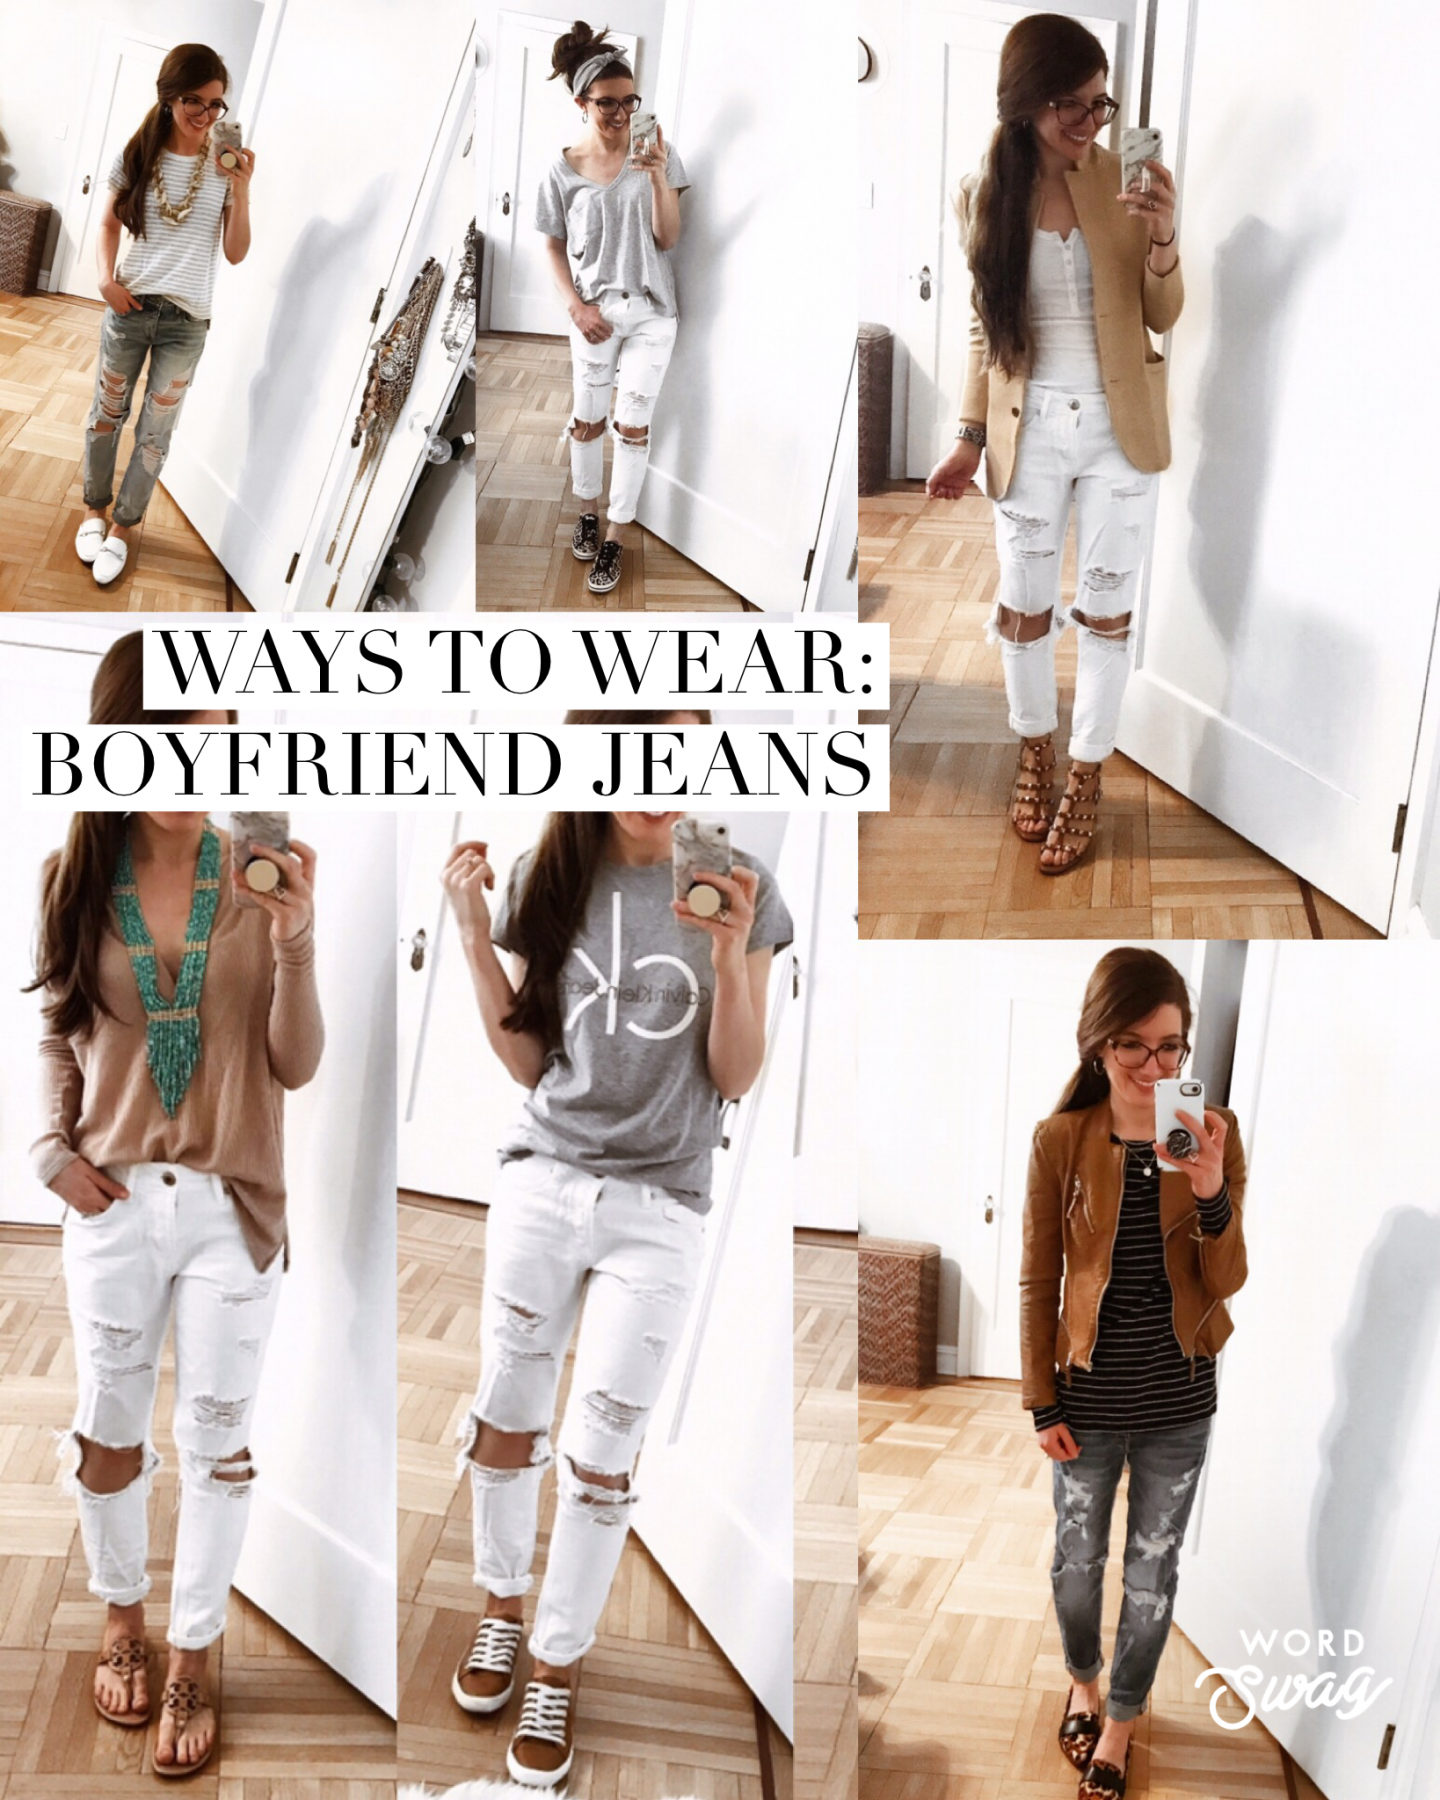 WAYS TO WEAR: boyfriend jeans